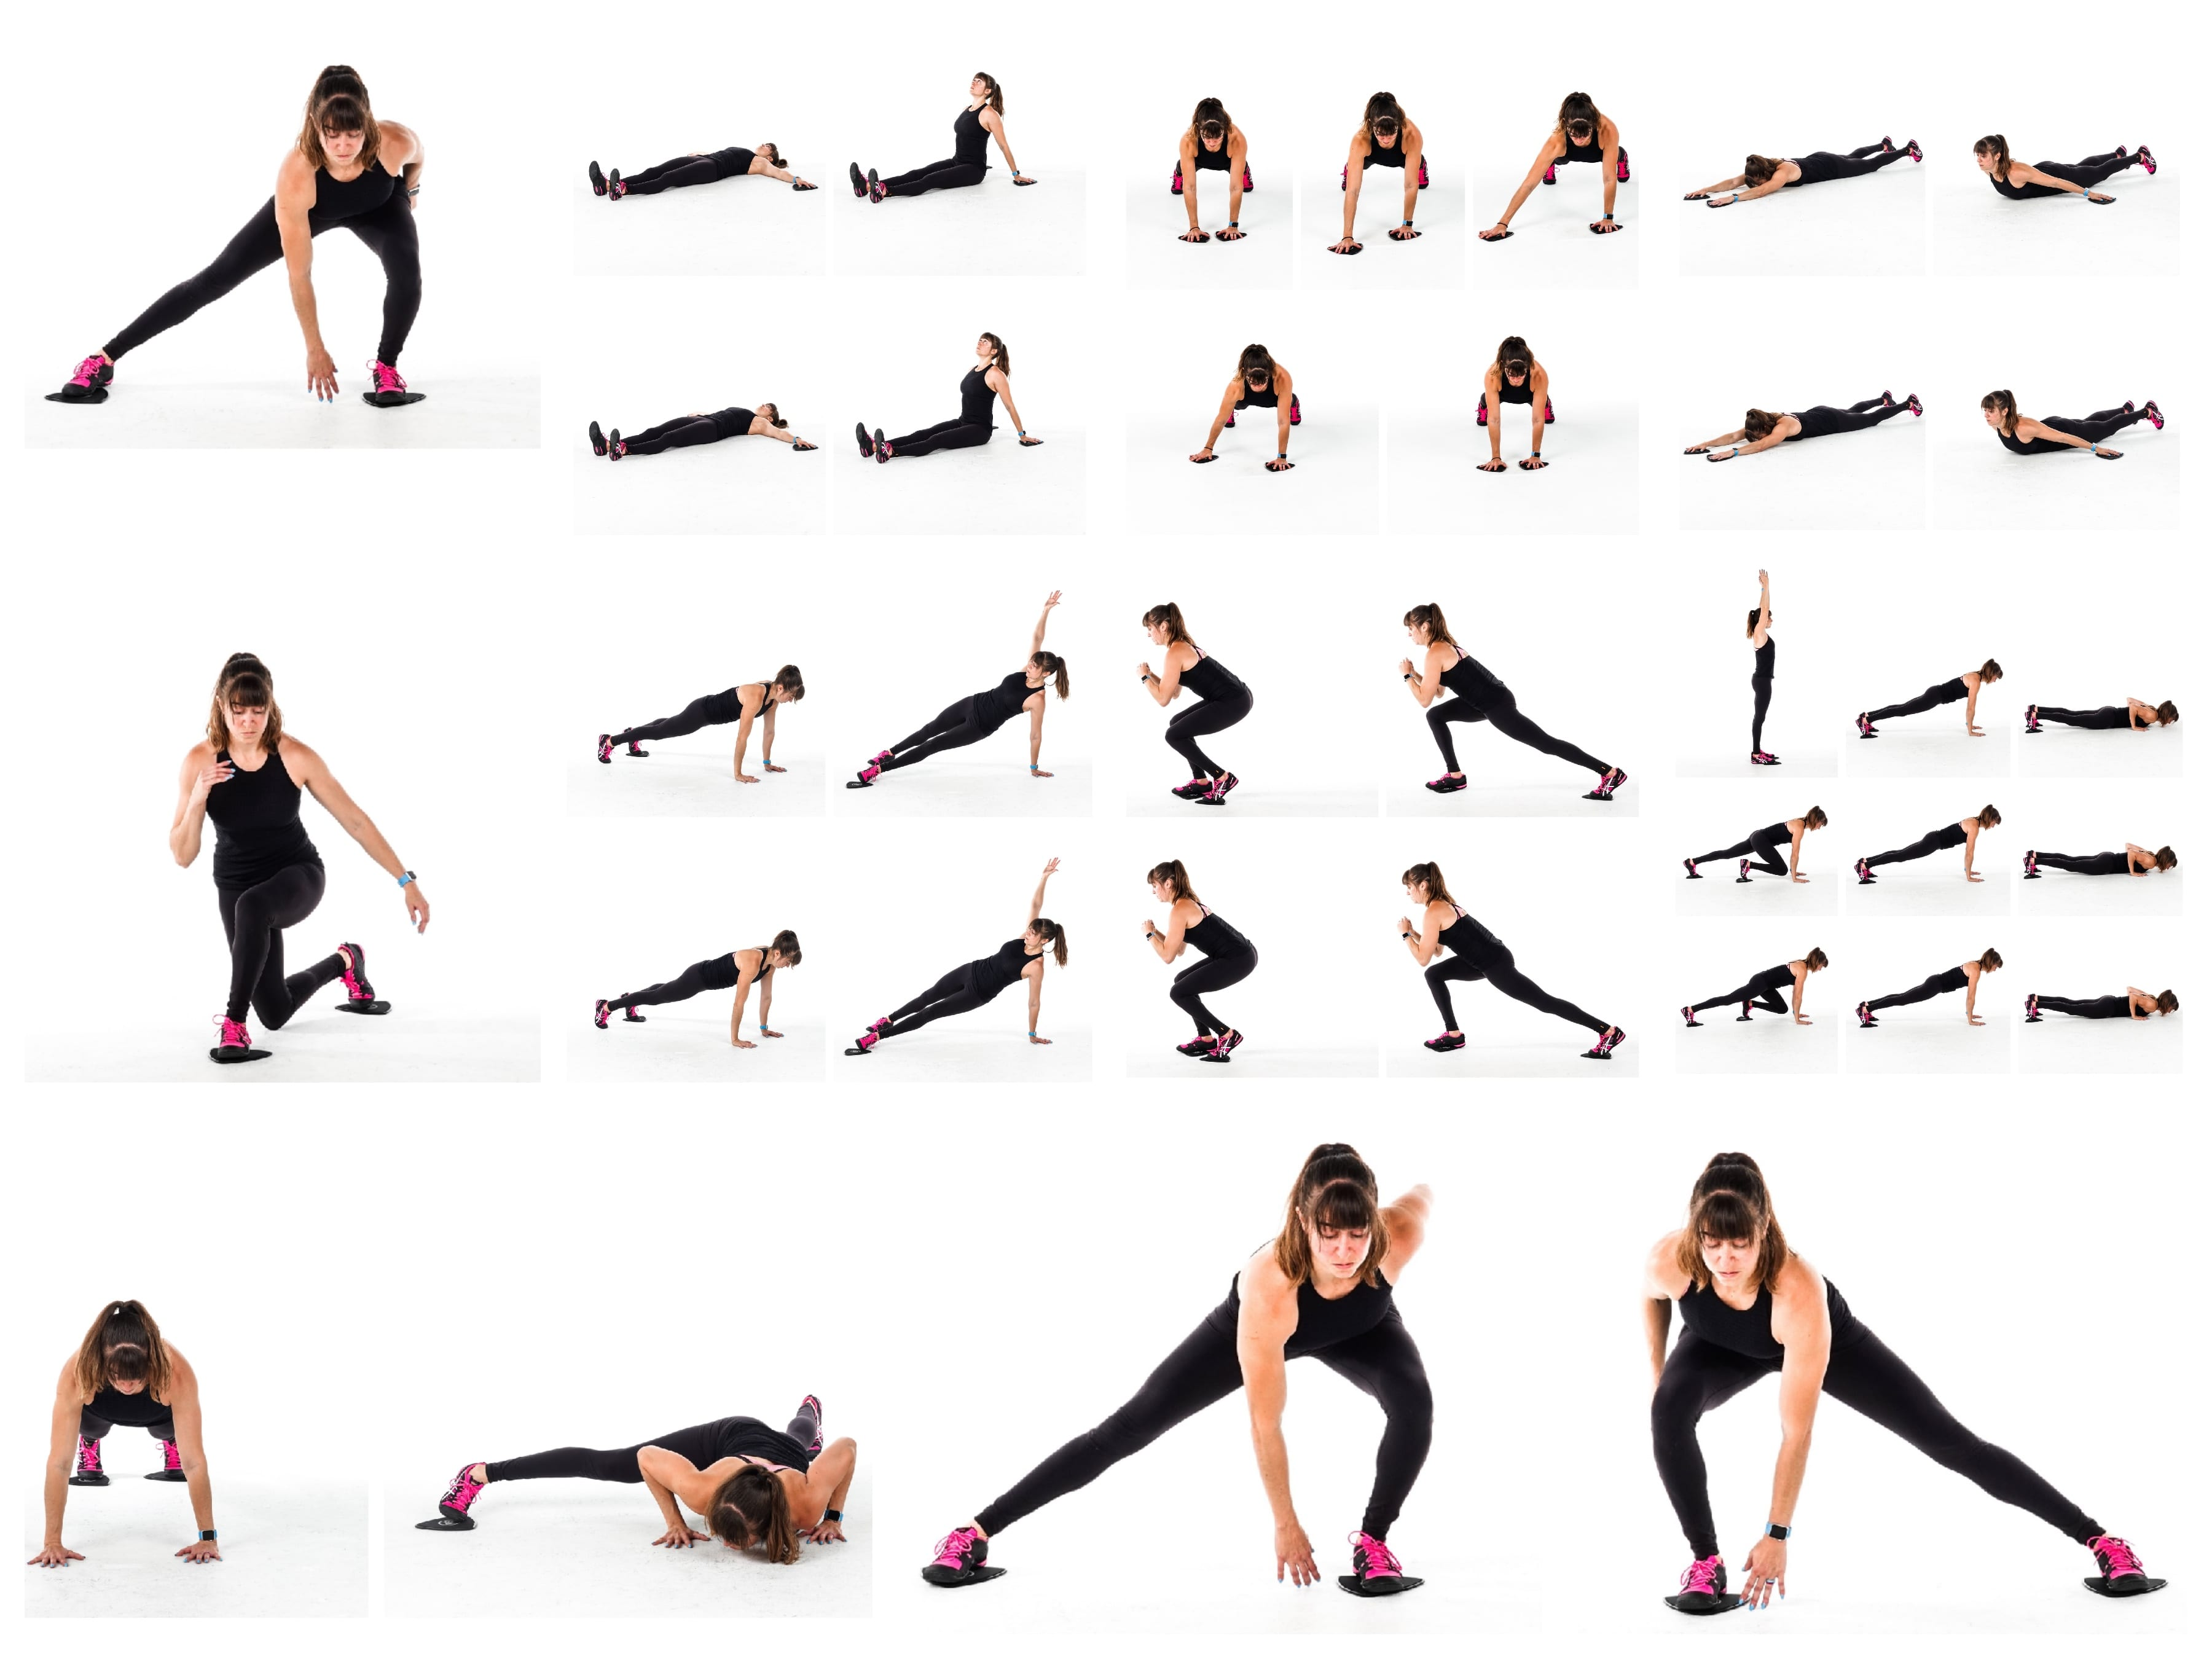 12 Slider Exercises For A Full-Body Workout